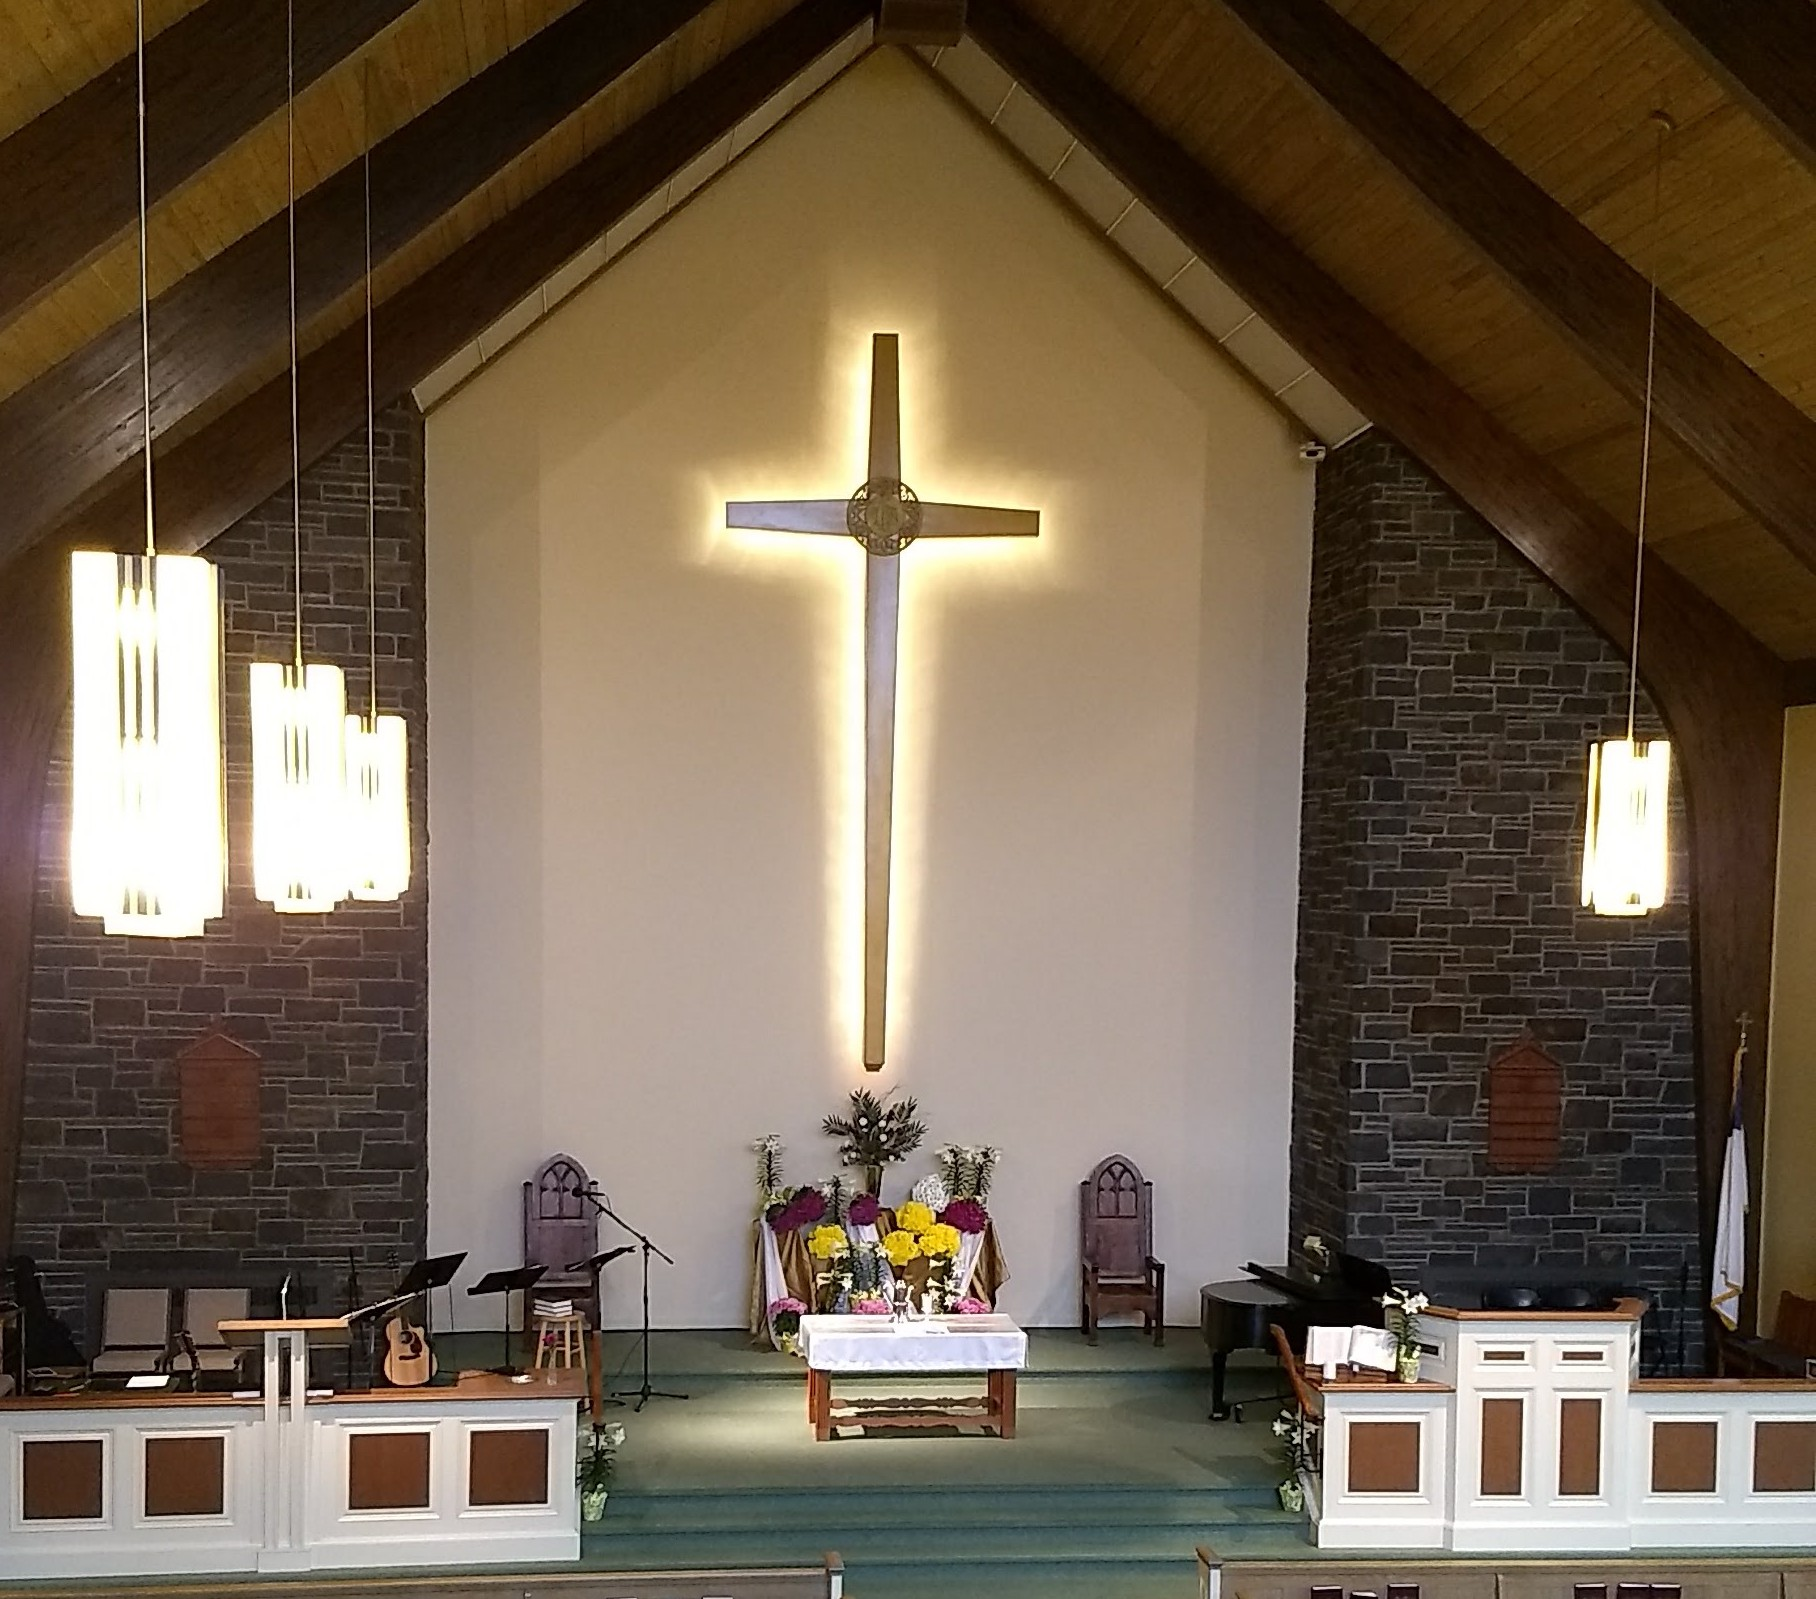 PIANO, GUITAR AND ORGAN ARE ALL USED IN WORSHIP